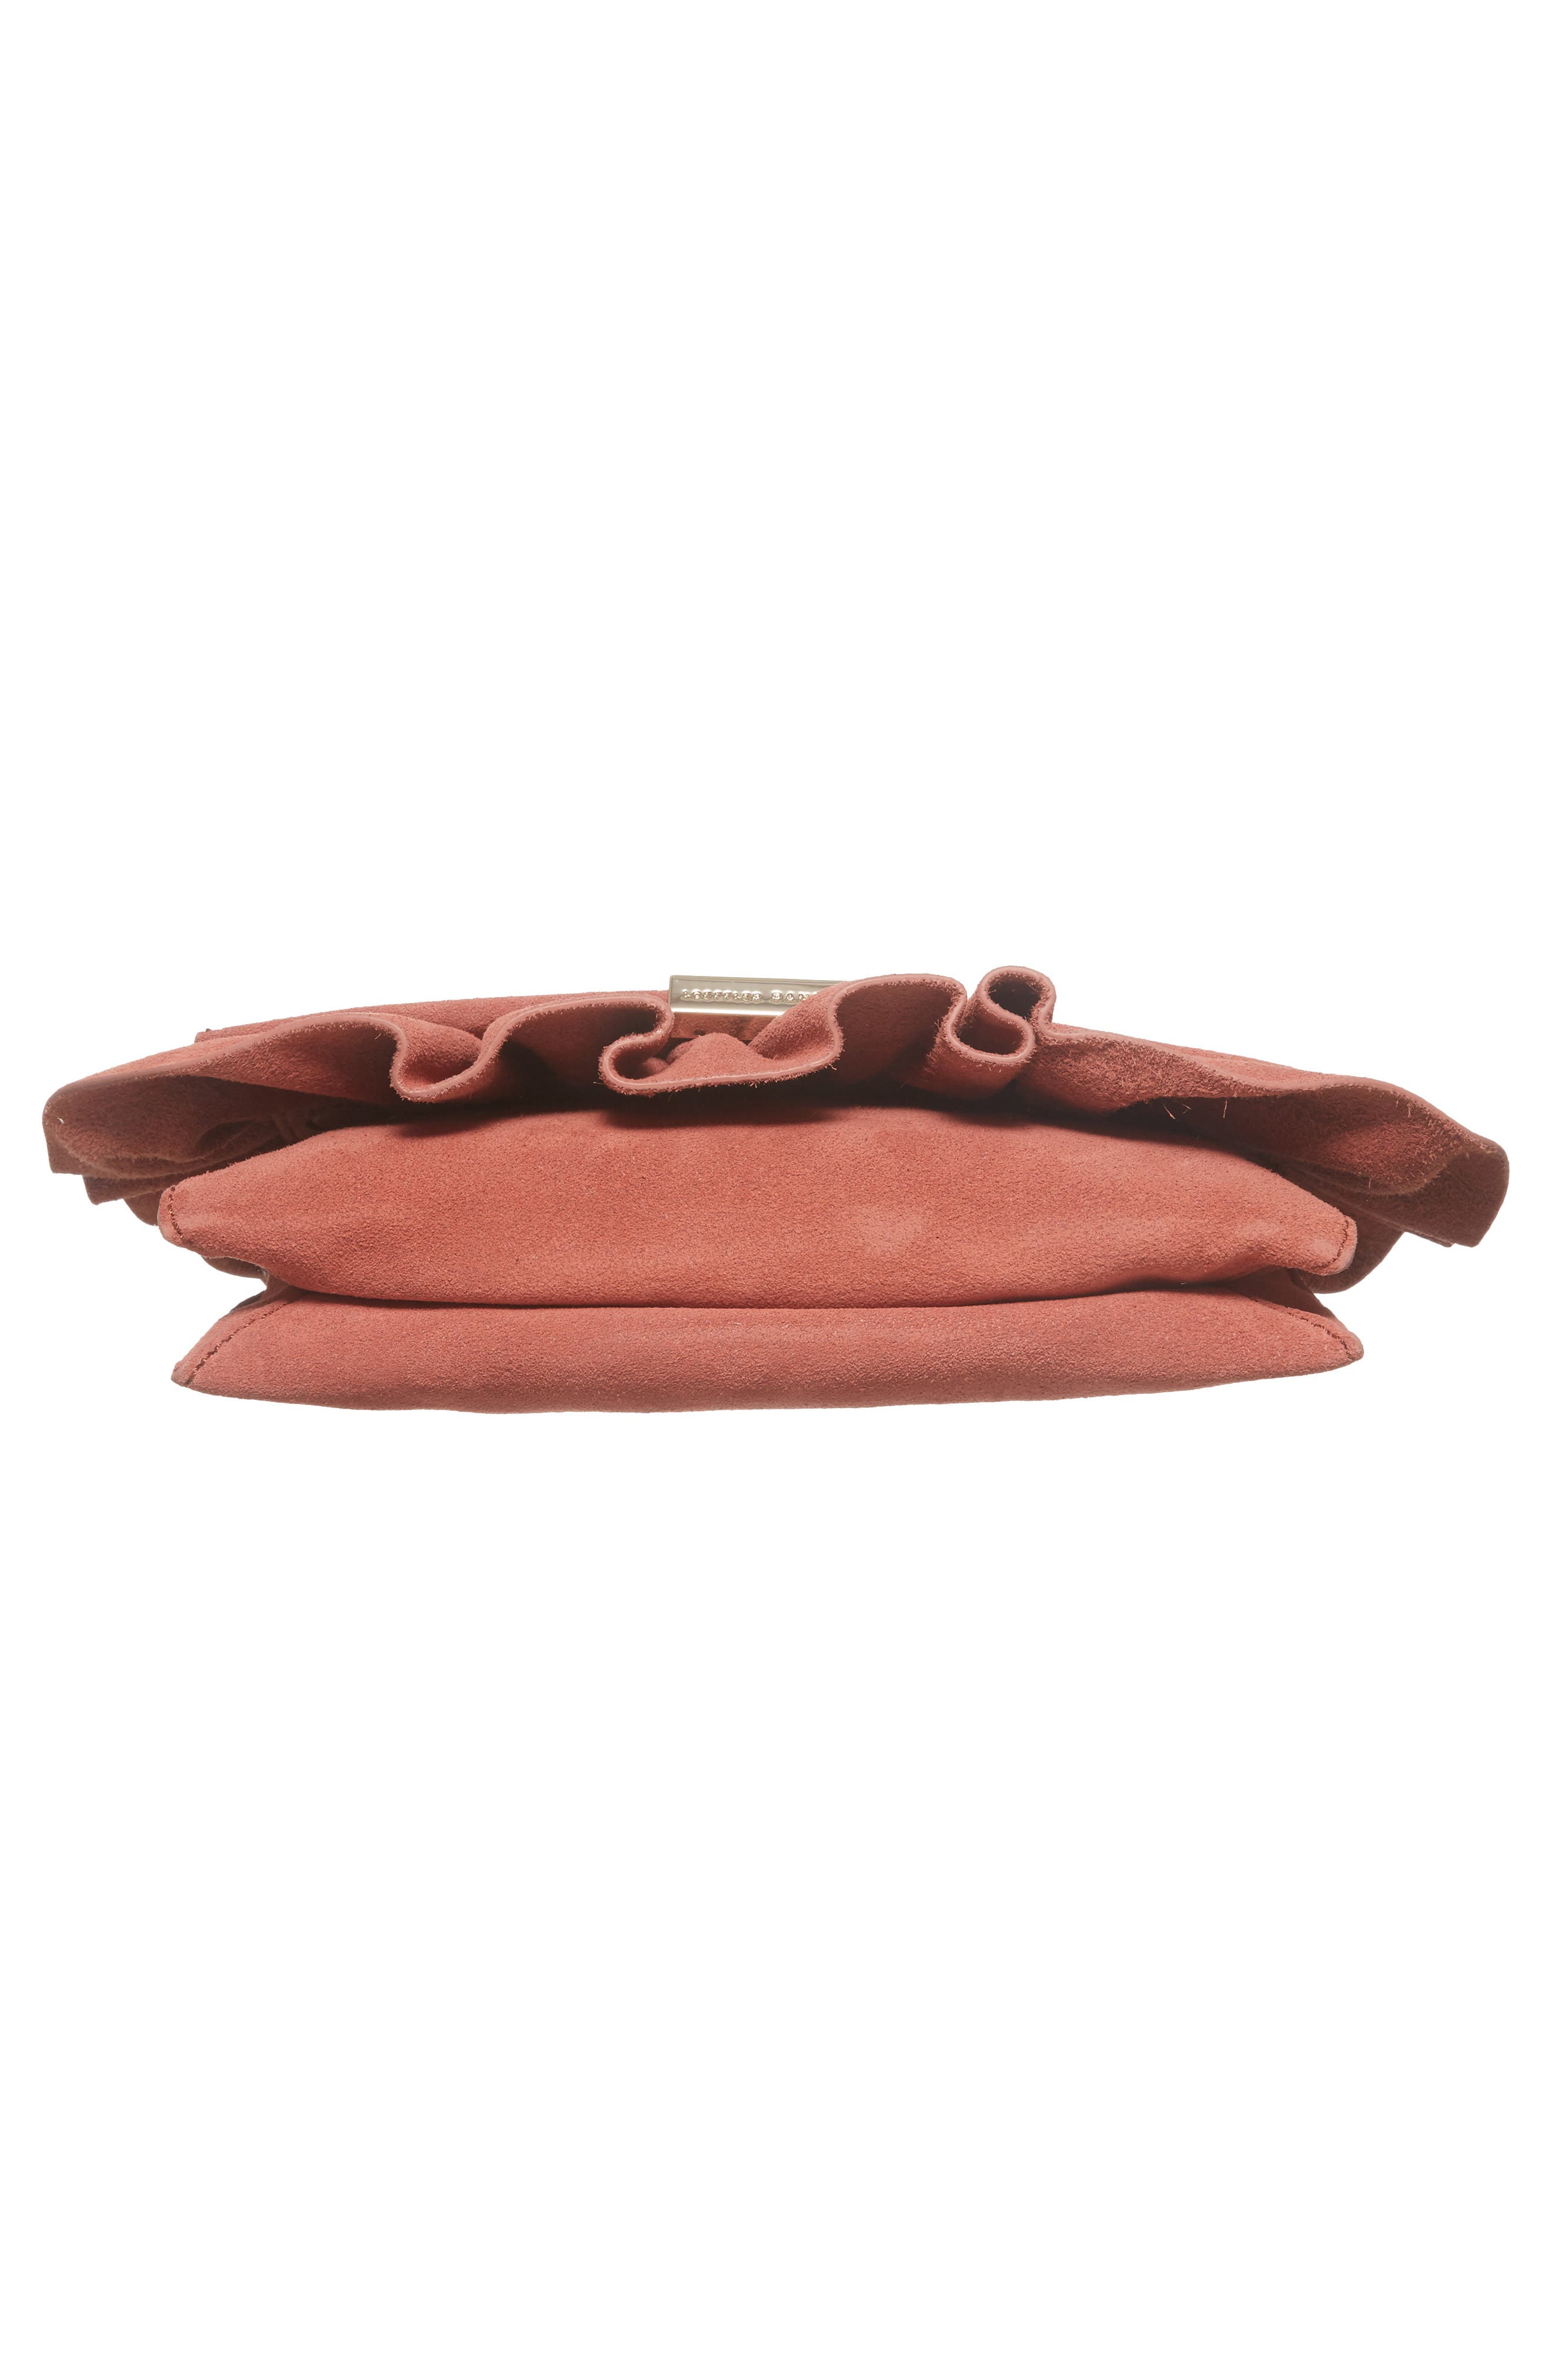 Ruffle Clutch,                             Alternate thumbnail 6, color,                             Dusty Rose